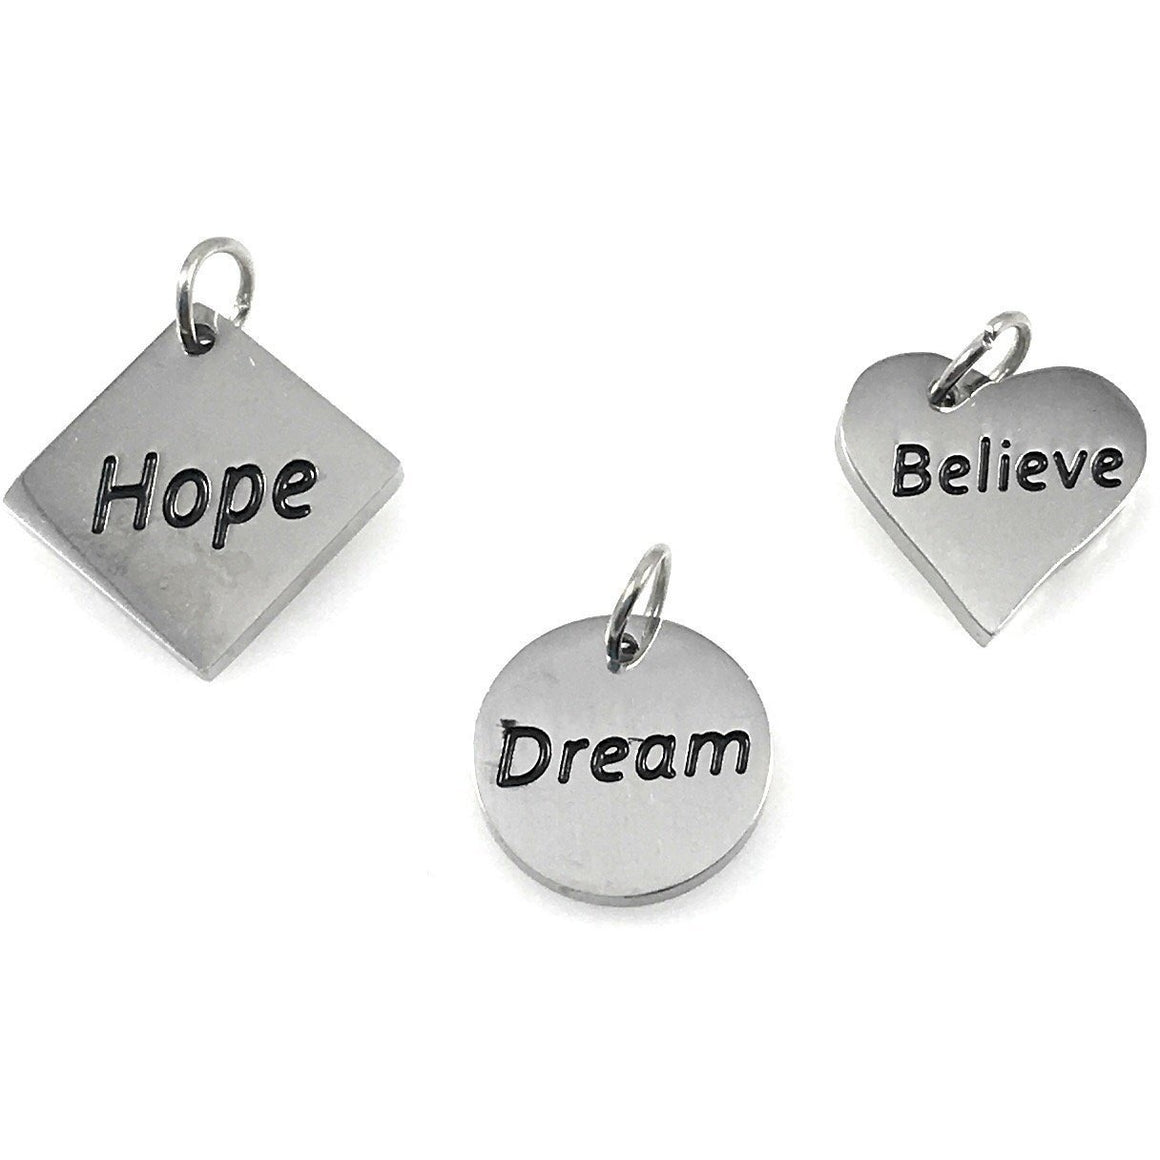 Hope Dream Believe Set of 3 Charms Stainless Steel - Beads and Dangles